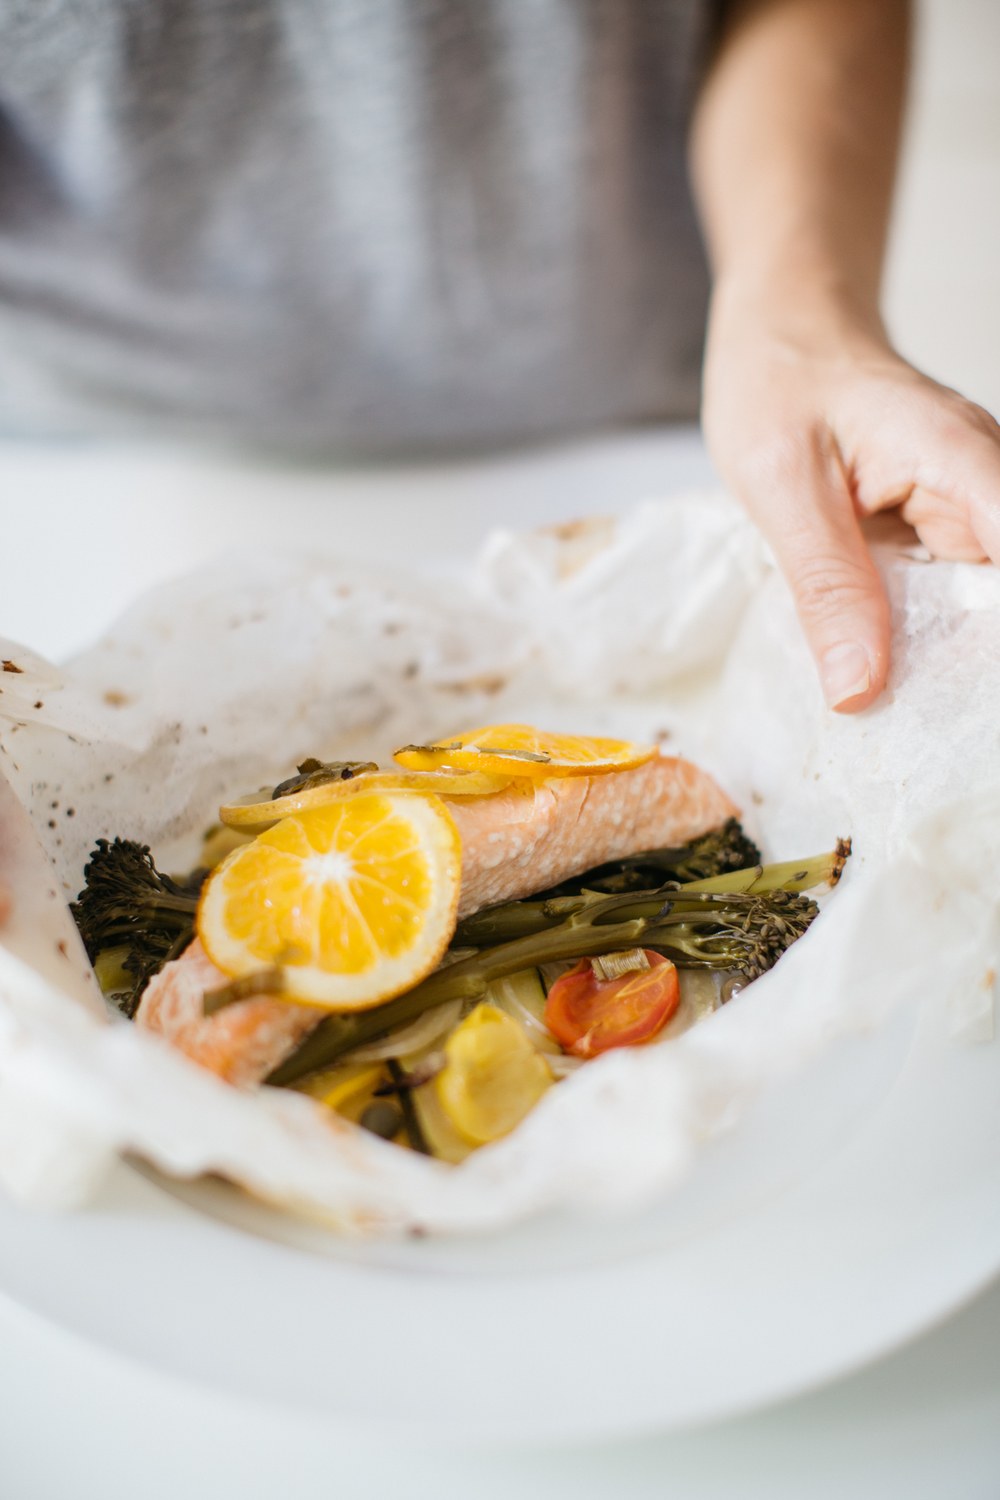 Salmon en papillote with summer vegetables. Gluten free, Pescetarian, Dairy Free.